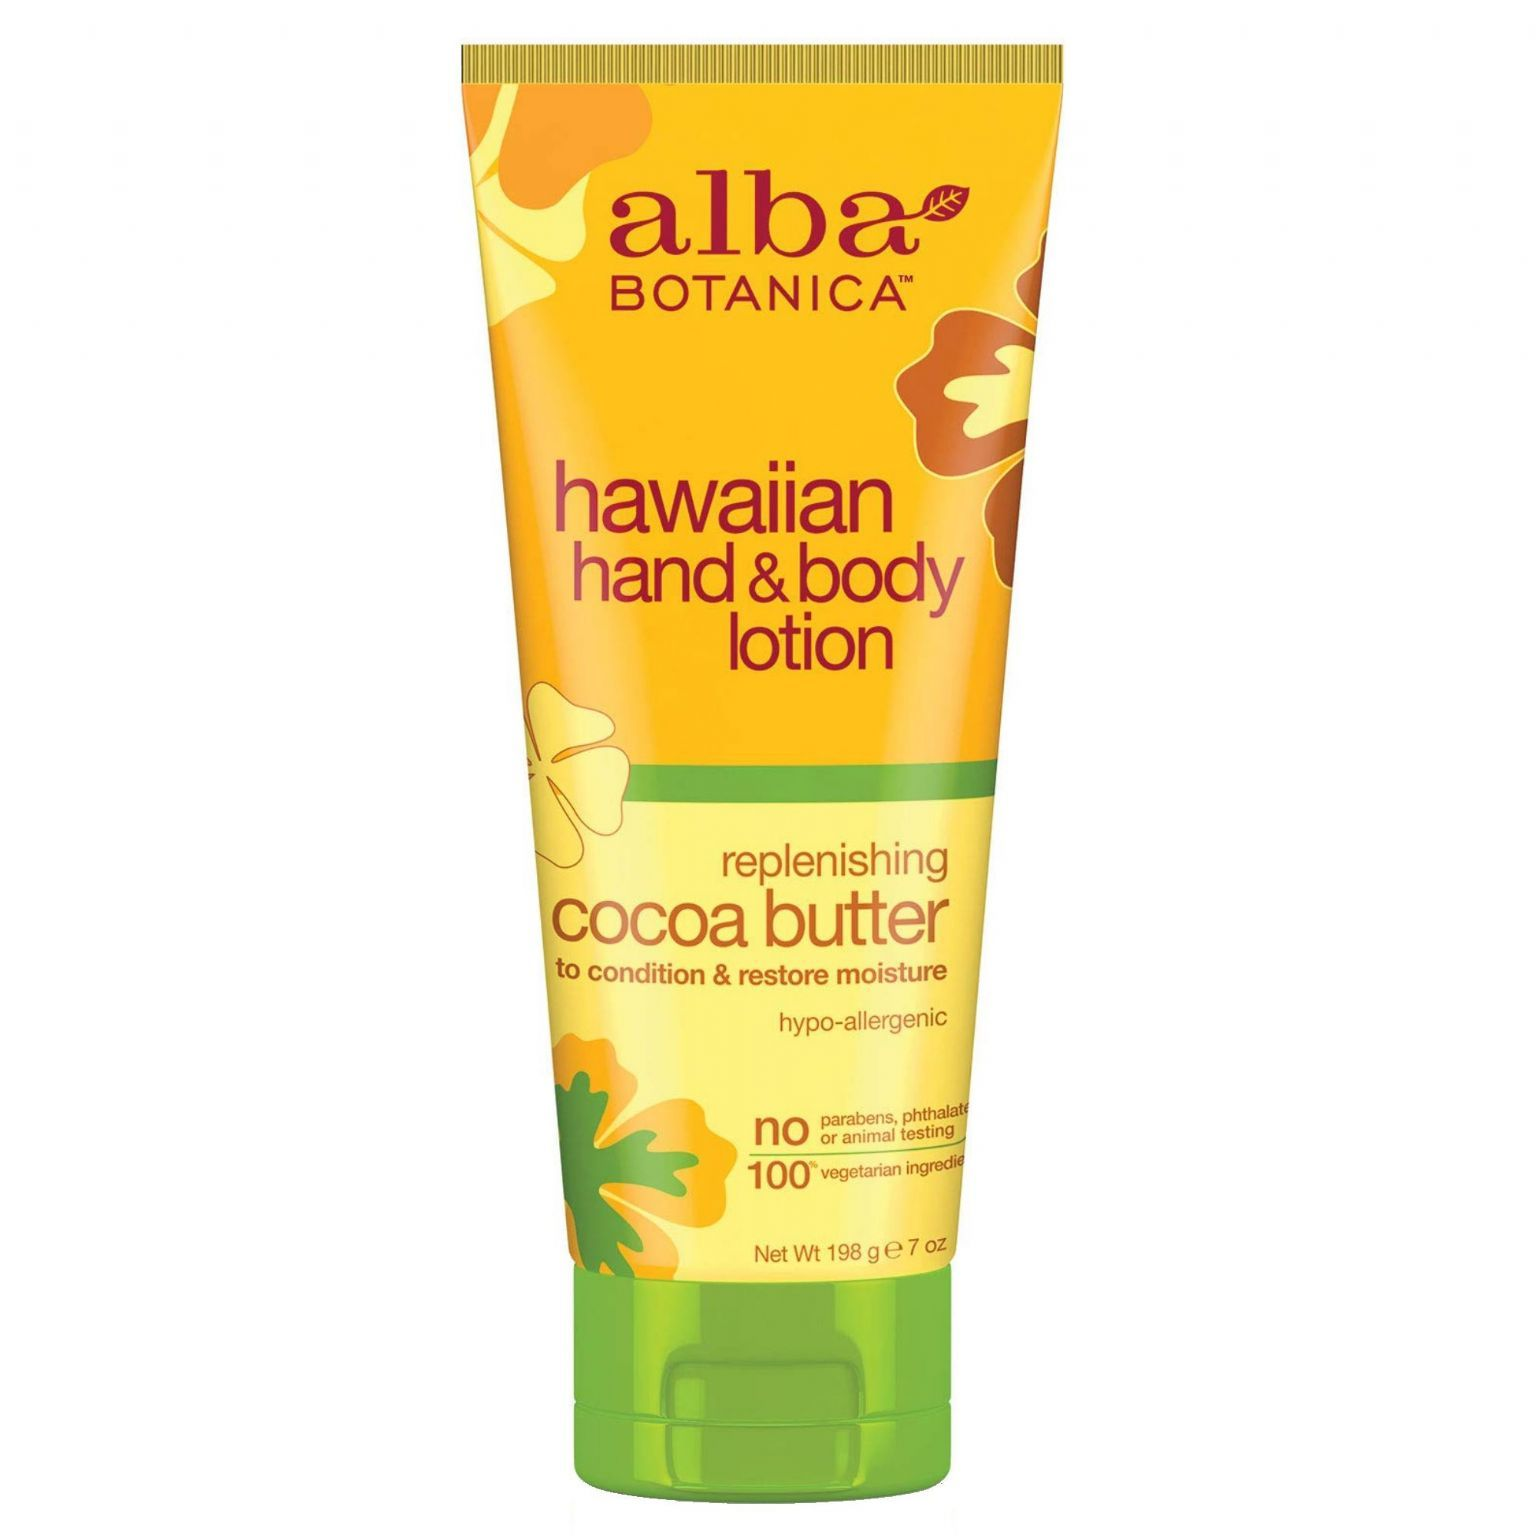 Hawaiian Hand & Body Lotion with Replenishing Cocoa Butter